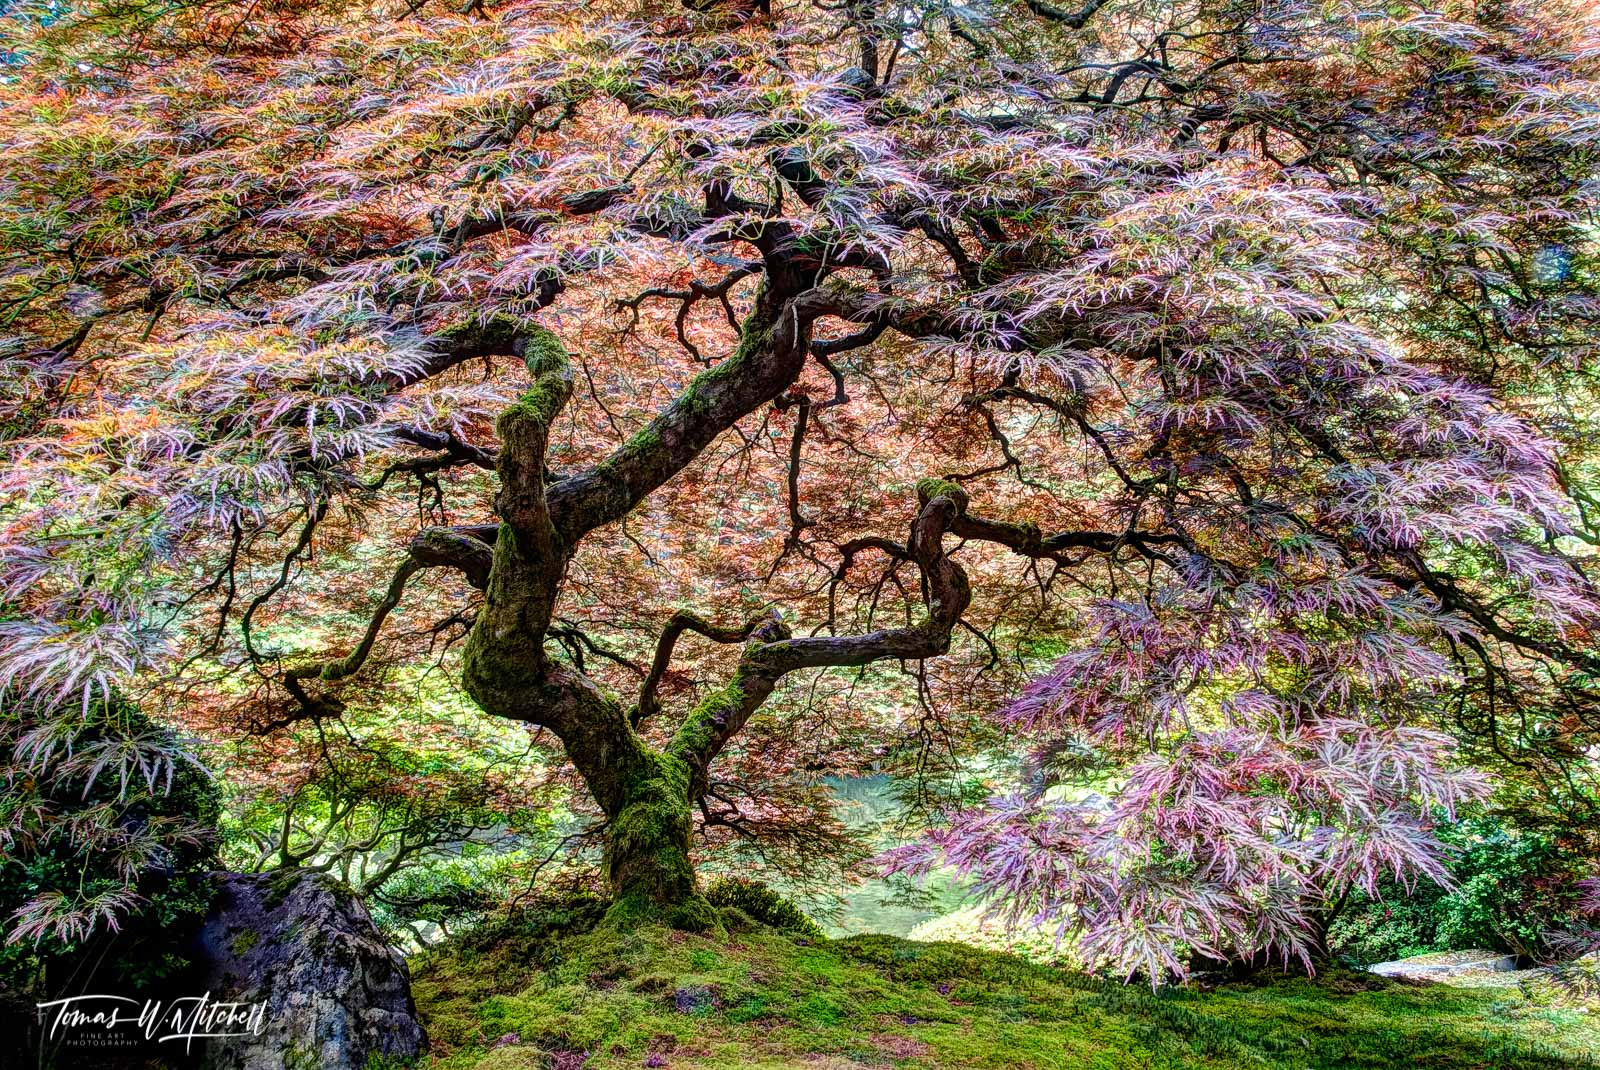 limited edition, fine art, prints, tree of life, portland oregon, japanese garden, photograph, rodney lough jr, peter lik, spring, colors, green, yellow, red, photo